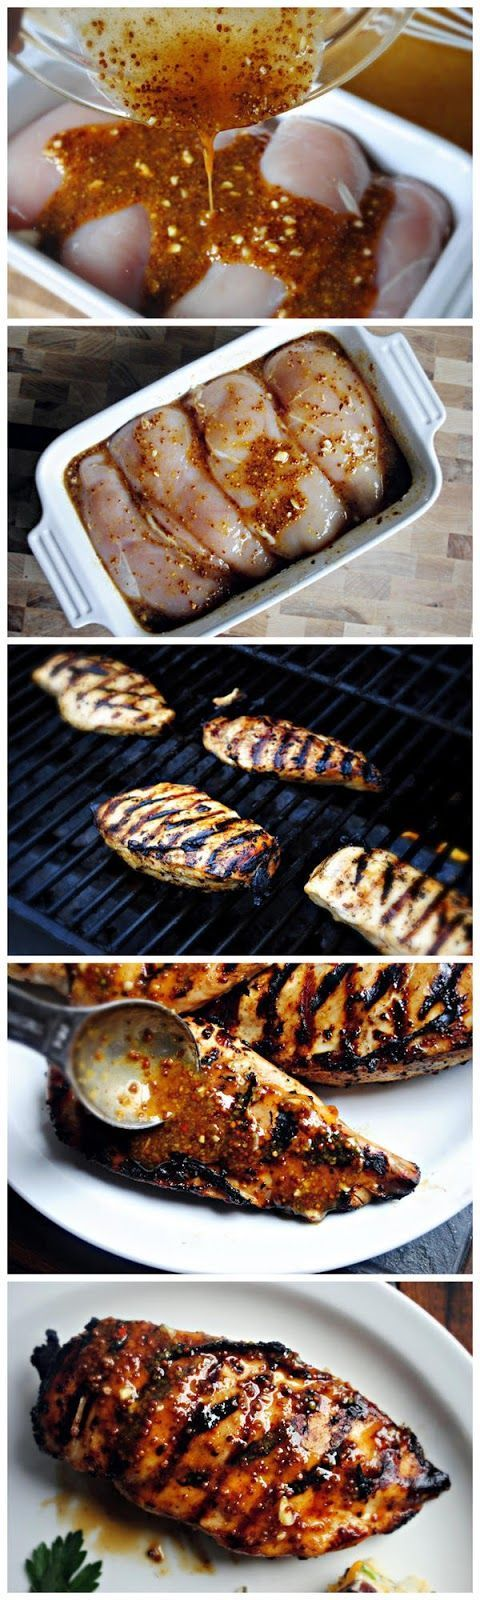 "Grilled Honey Mustard Chicken || ""I have made this recipe a dozen times; whether a quick marinade then on the grill, marinade for a few hours then sear on a grill pan or in the oven… and every single time I make it I wonder how it could possibly be so dang good? This is my no fail, always-a-hit-and-guaranteed-to-turn-out-delicious-every-time recipe!"""